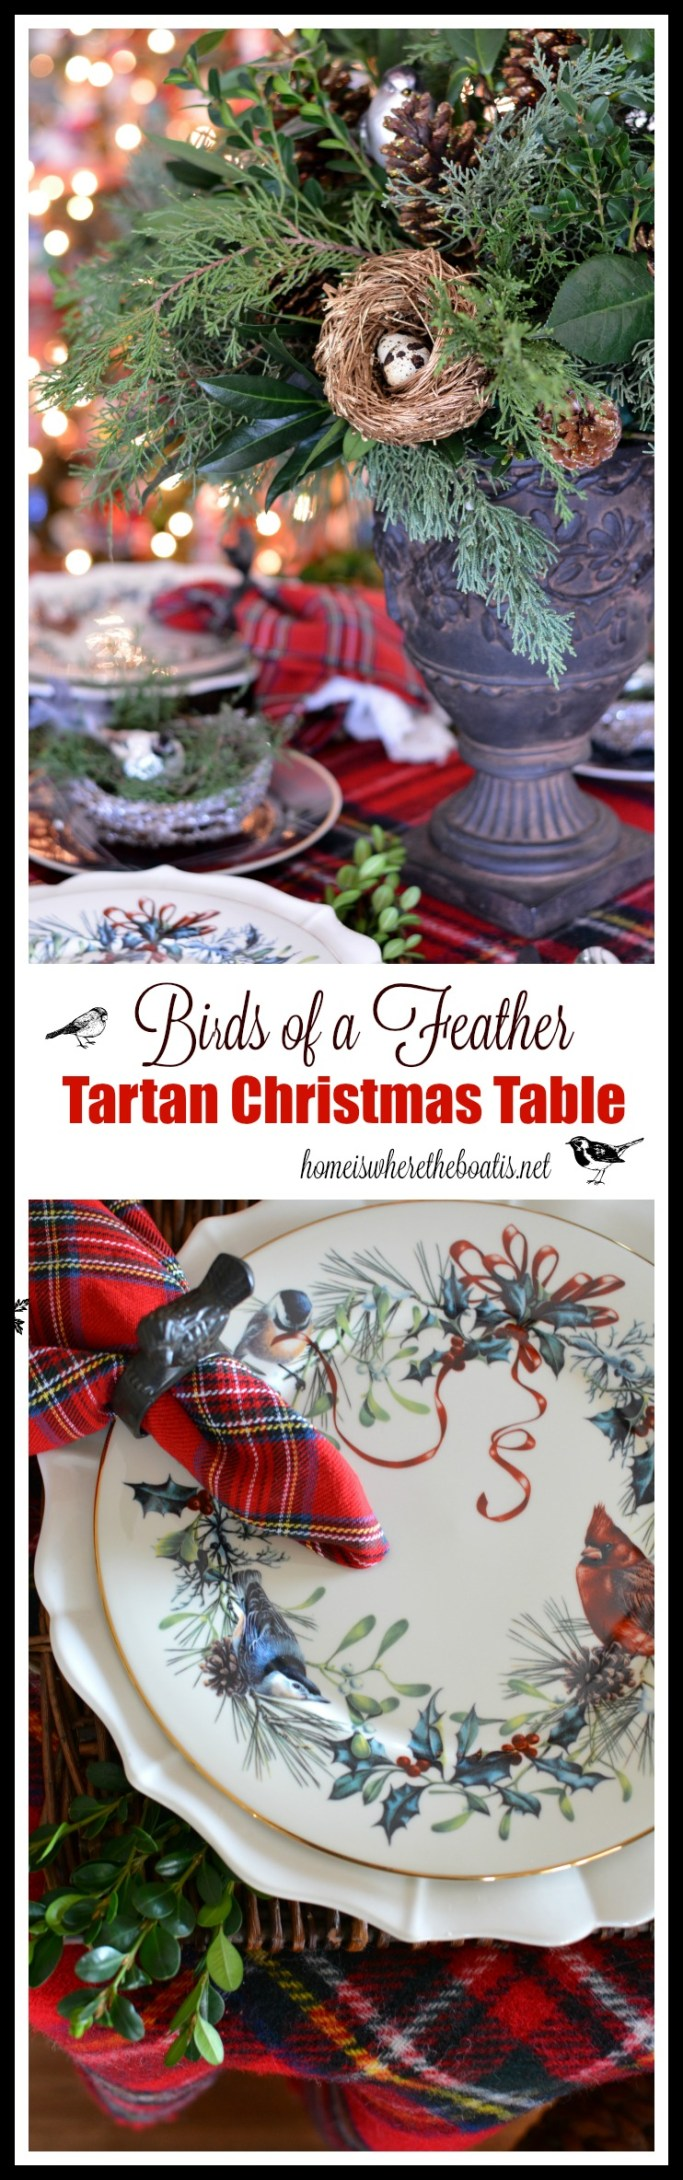 Birds of a Feather Tartan Christmas Table